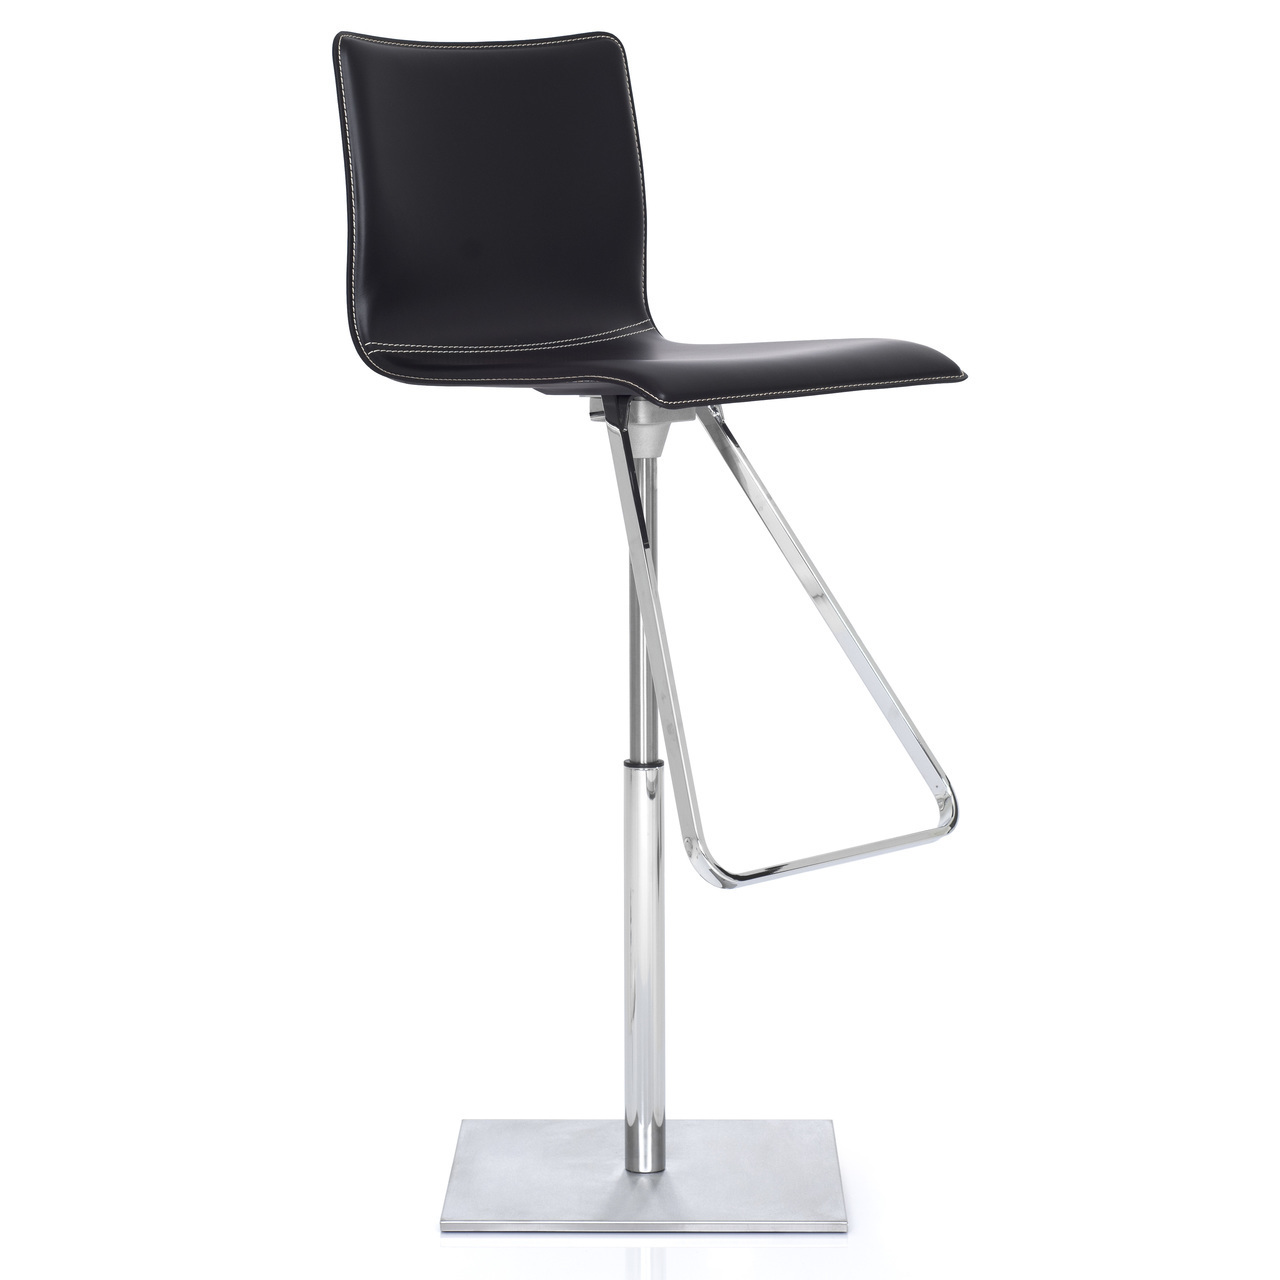 Tremendous Toto Bar Stool Chrome Base Caraccident5 Cool Chair Designs And Ideas Caraccident5Info